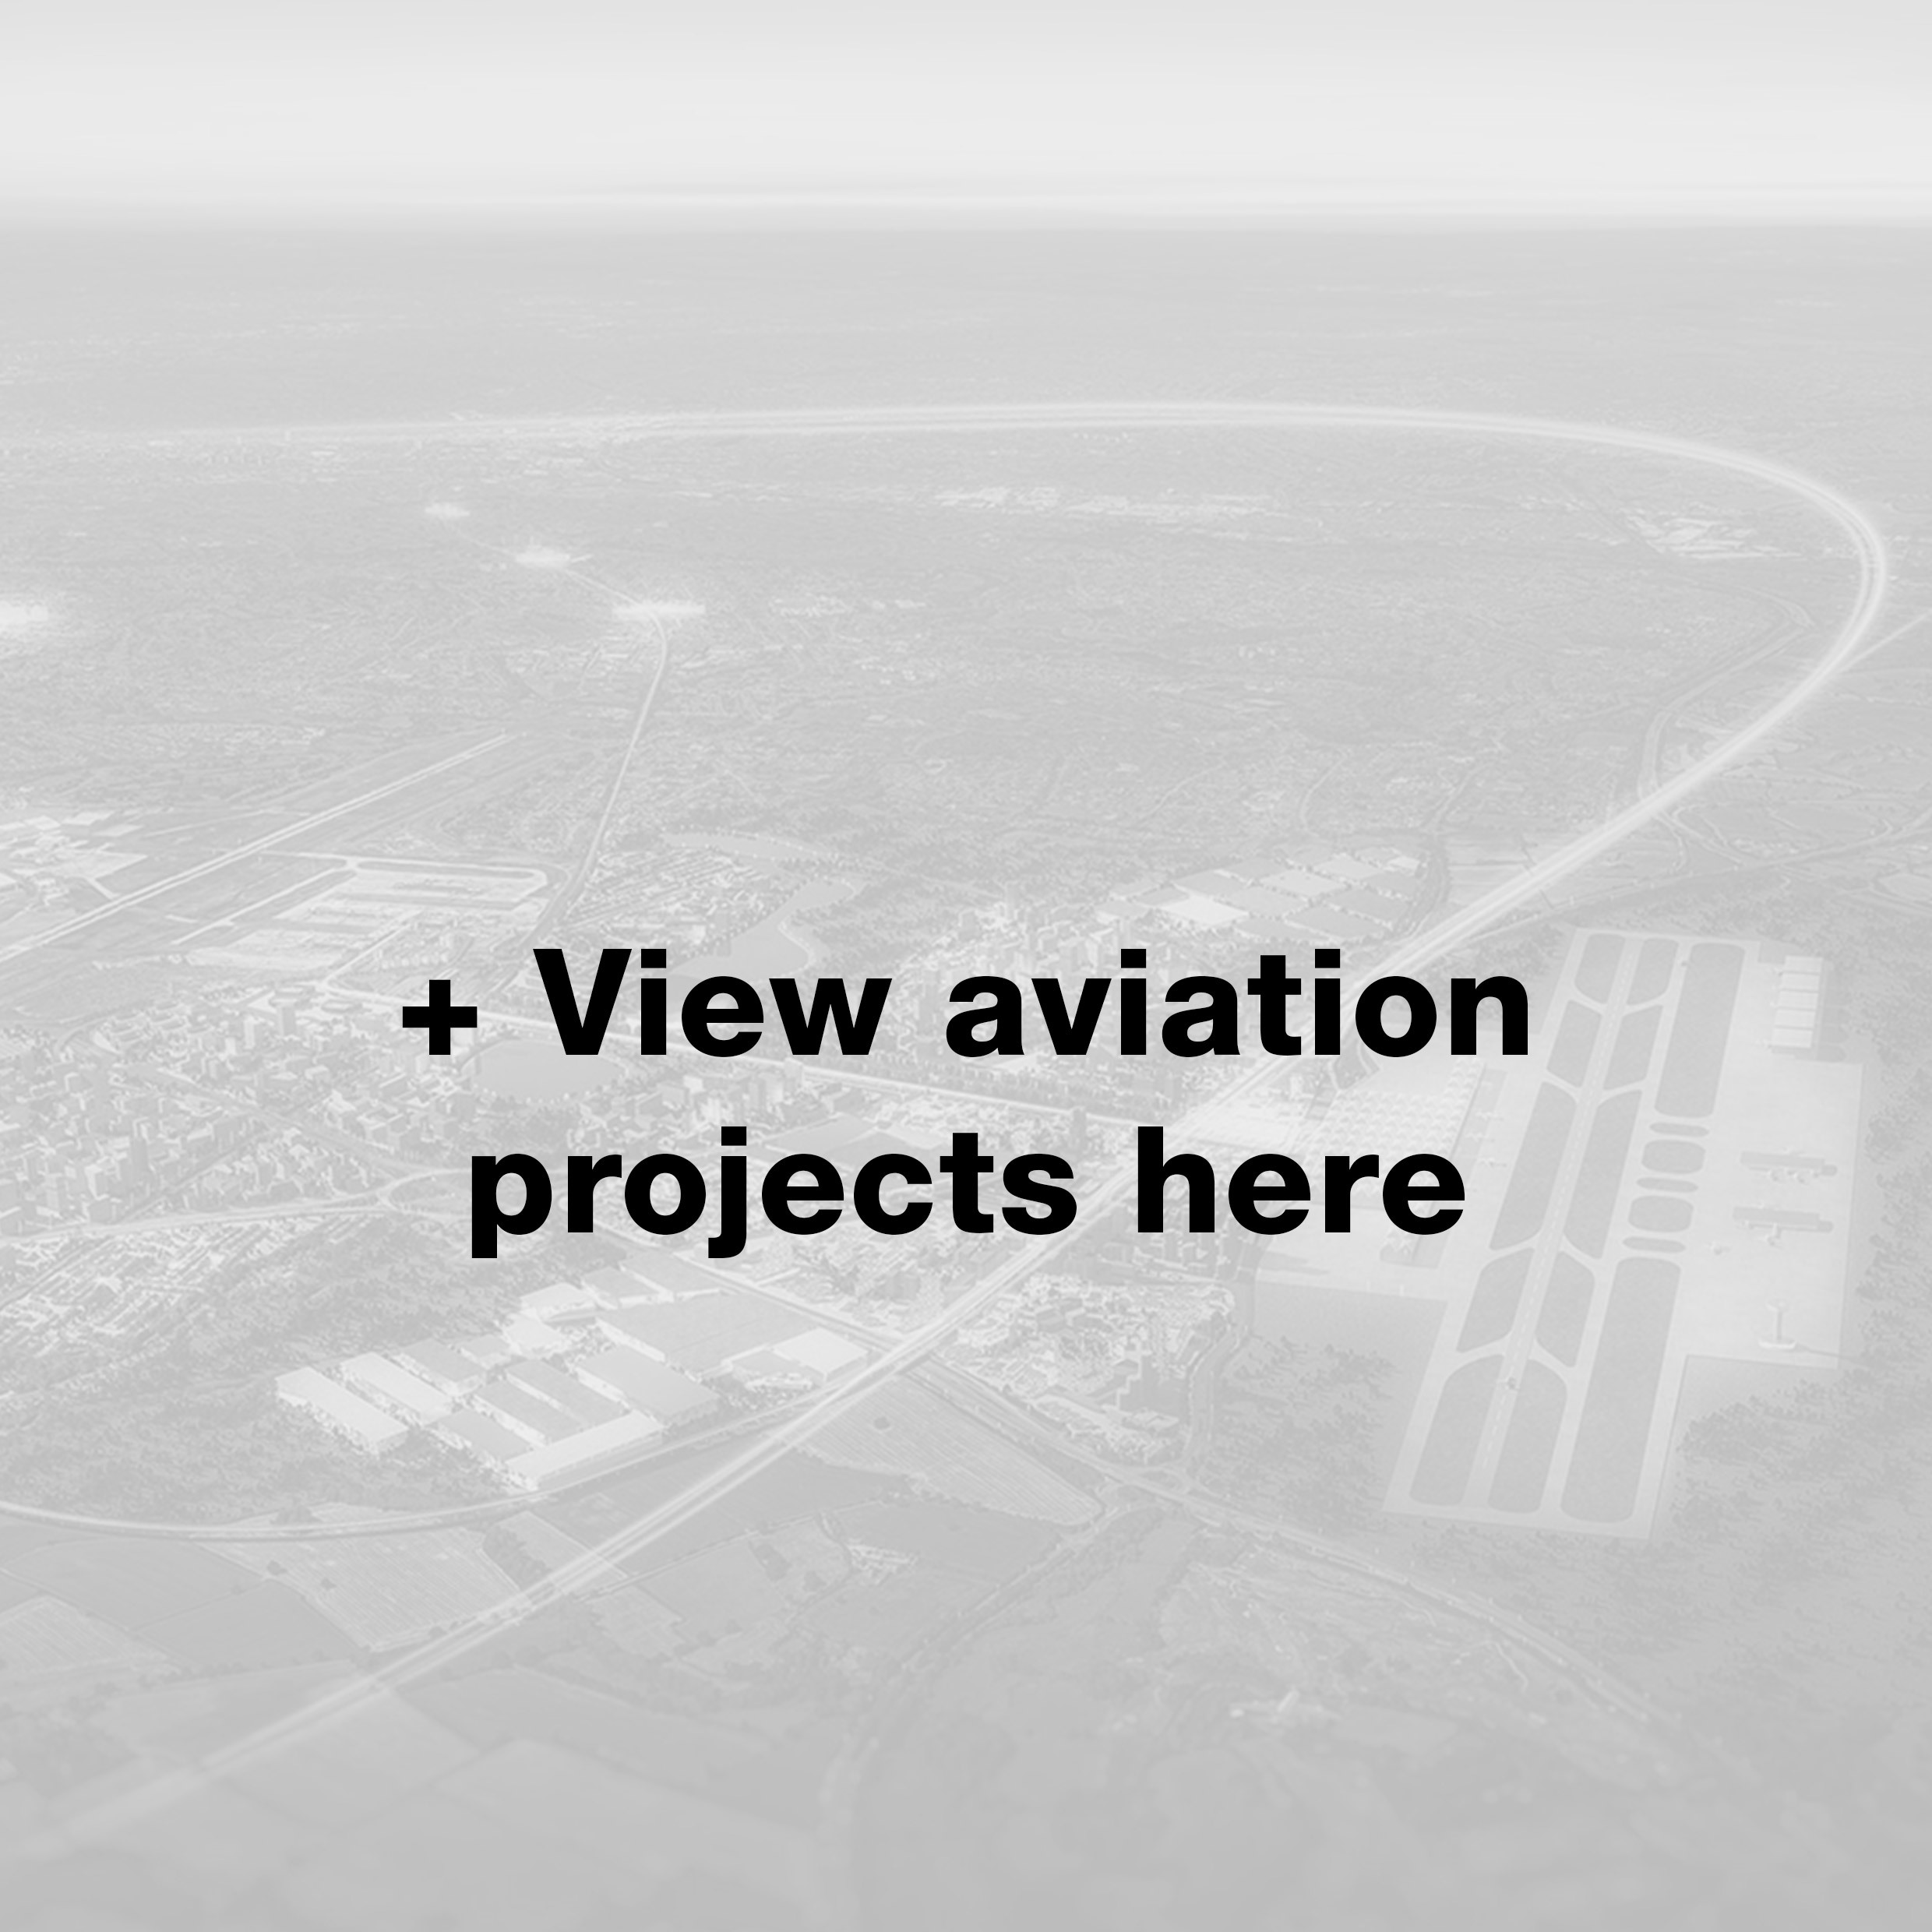 aviation-veiw-projects-here.jpg#asset:10535